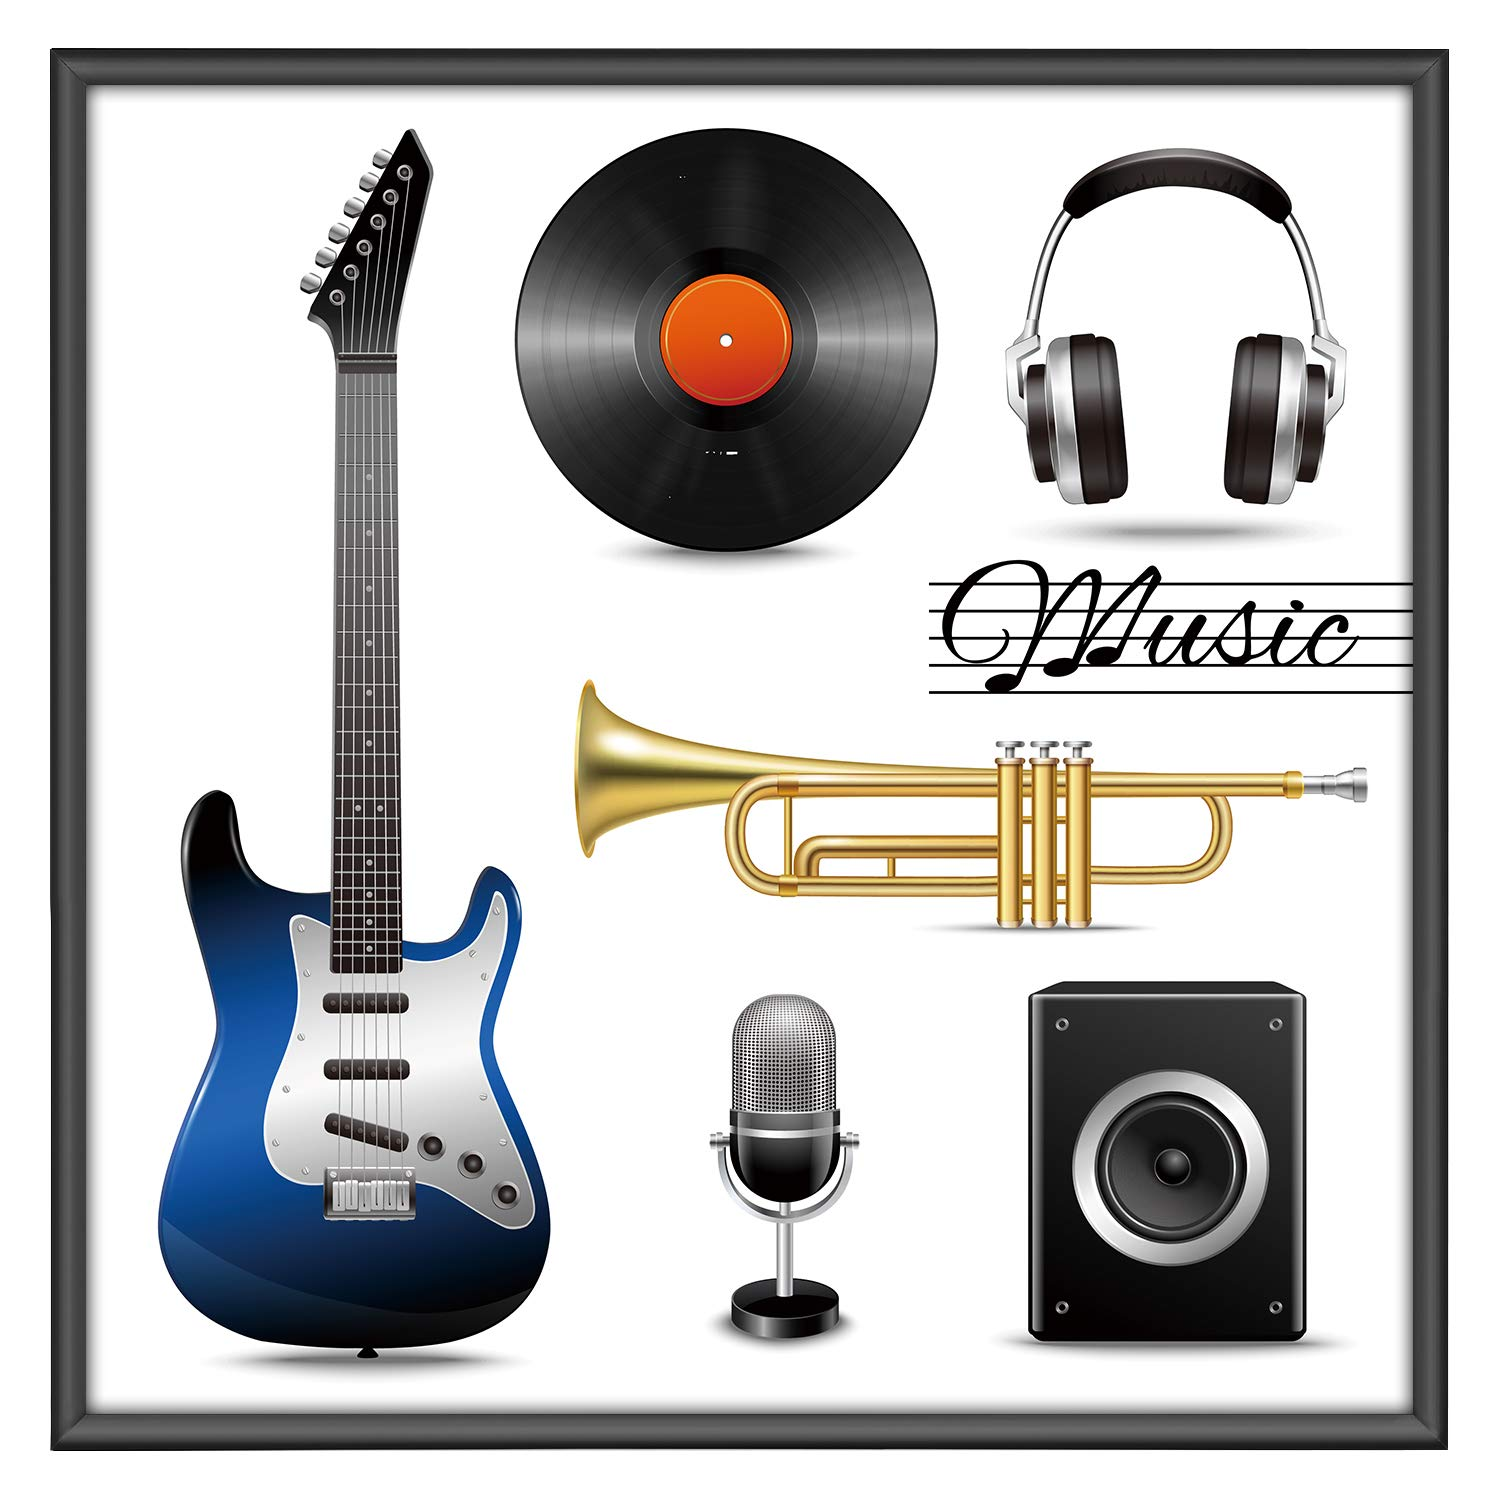 One Wall Album Frame - Aluminum Music Record Frame Displays 12.5x12.5 Inch Album Covers LP Covers - Wall Mounting Material Included